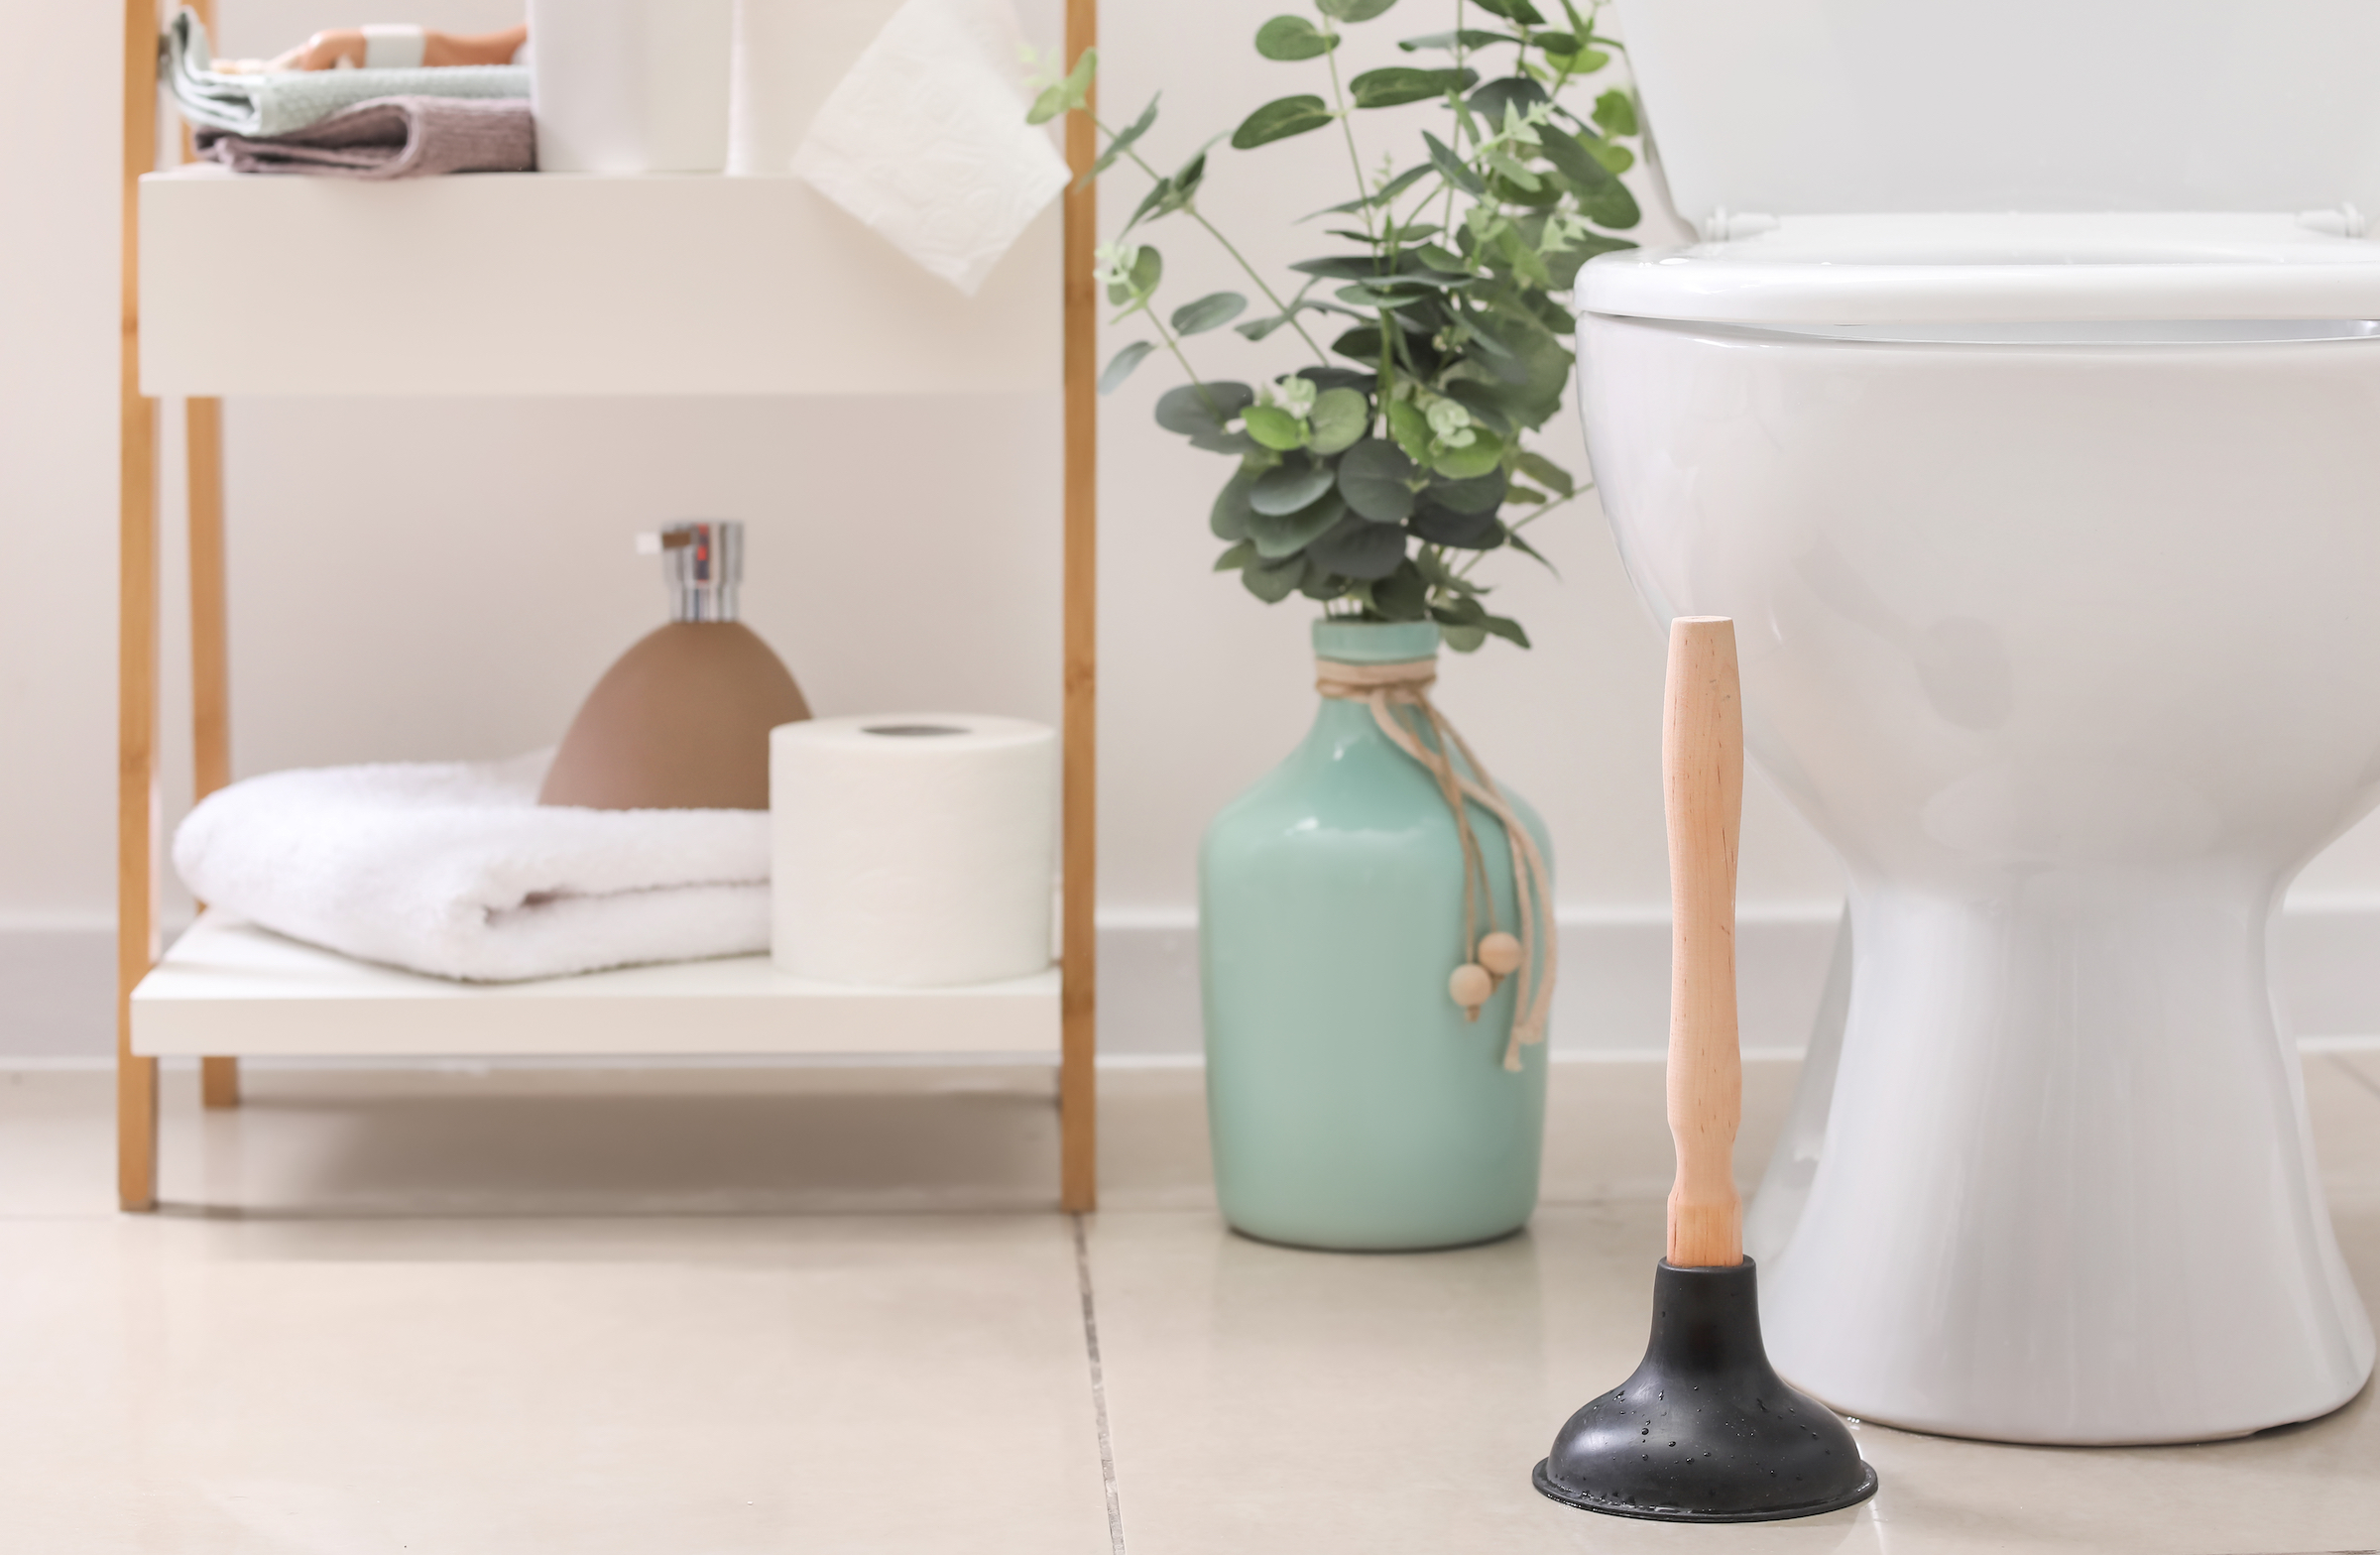 Plumbing tip for new homeowners 3: know your way around a plunger